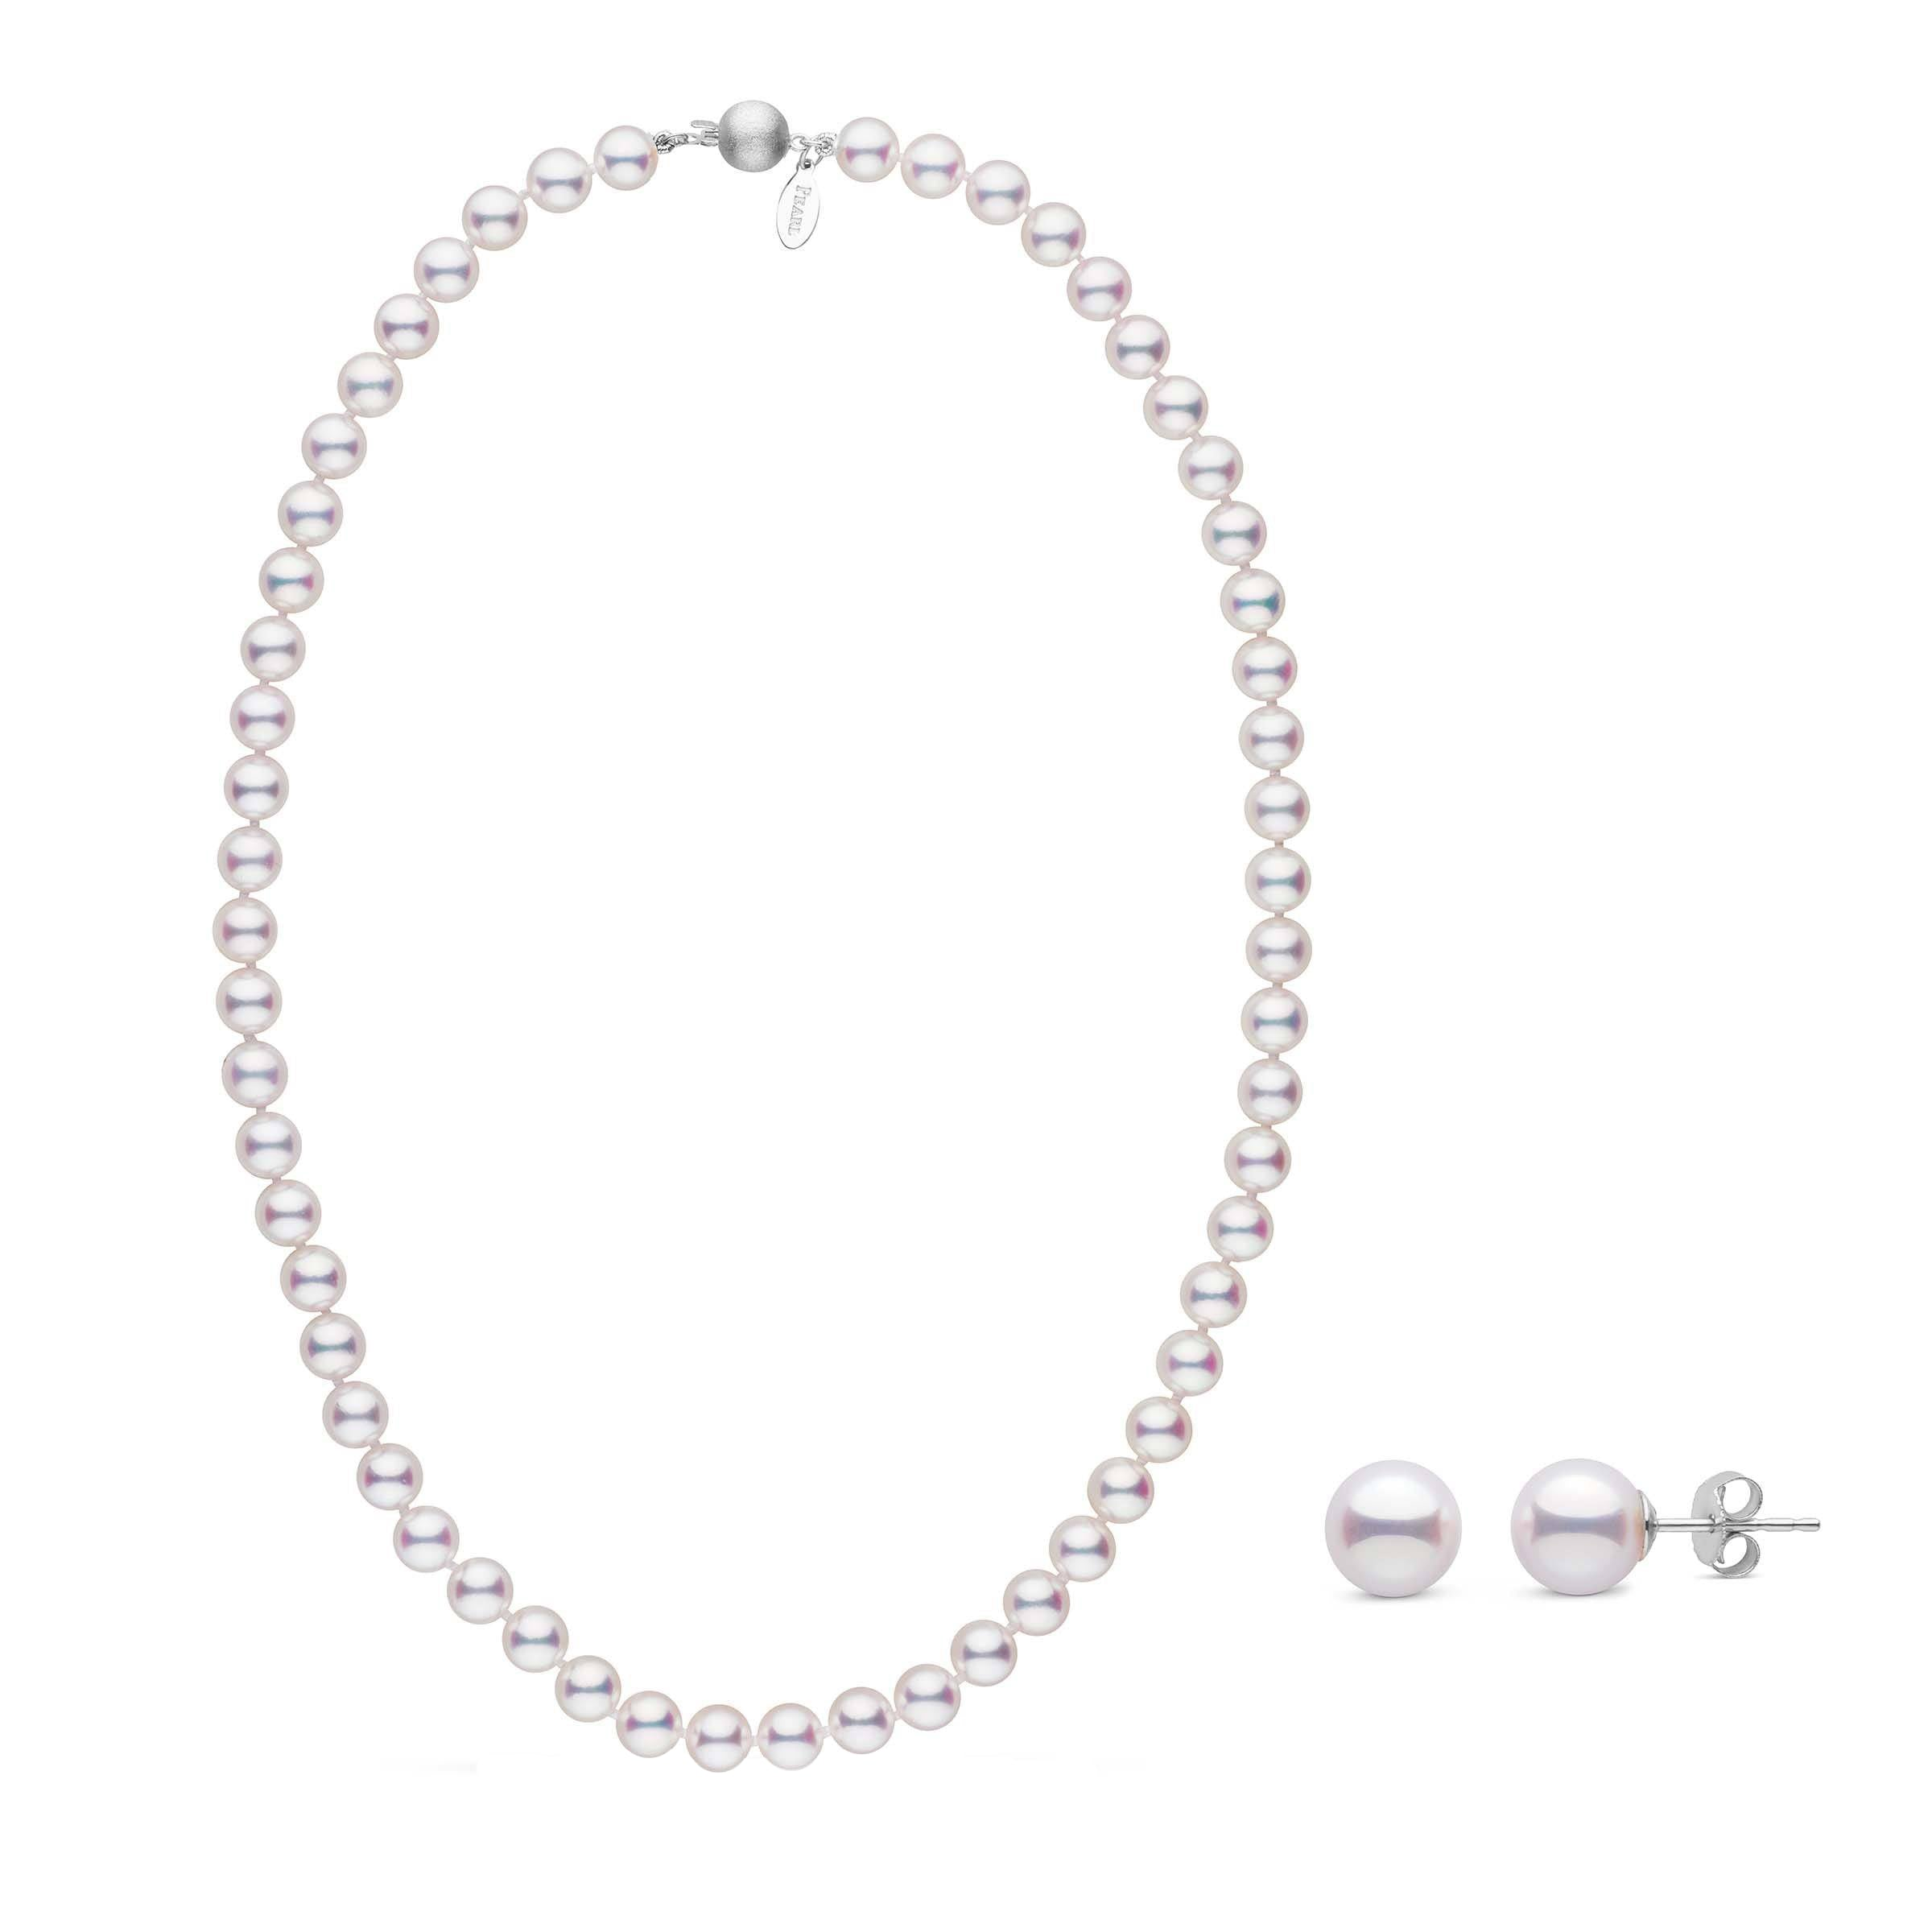 7.0-7.5 mm White Hanadama Akoya Pearl Set